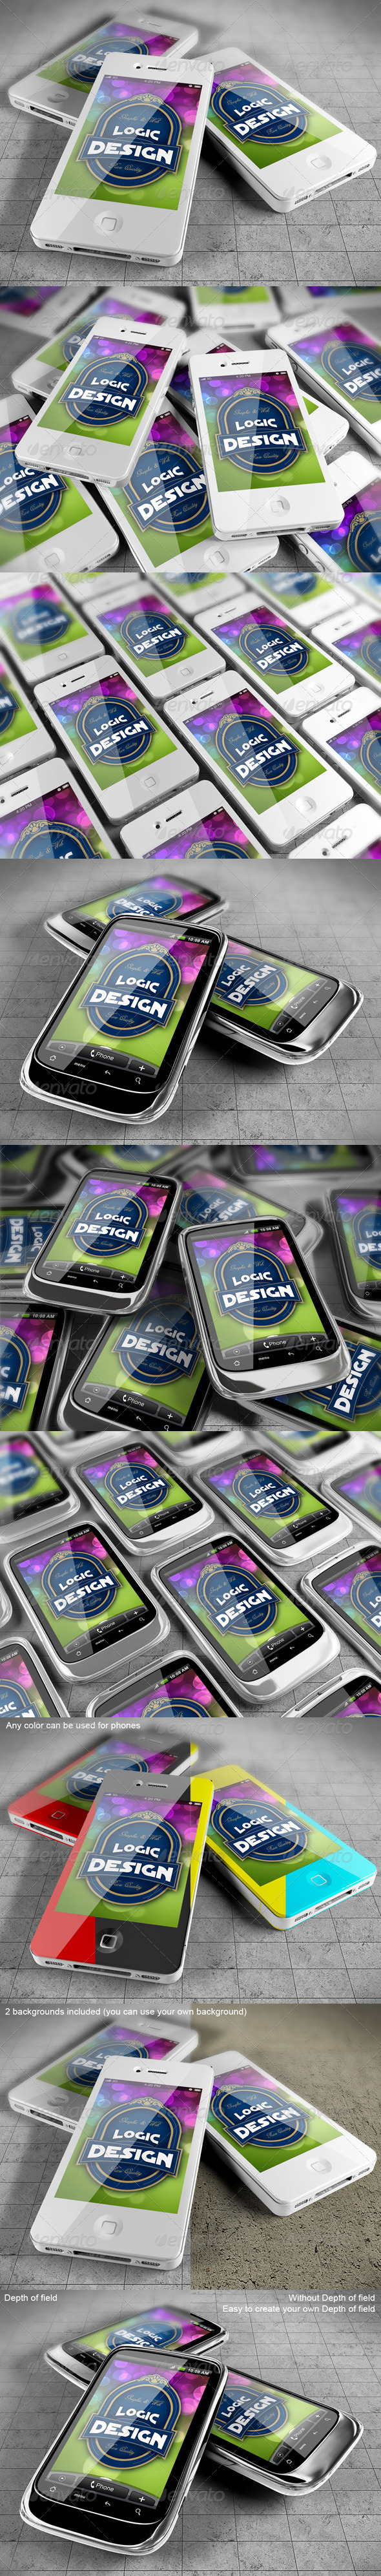 GraphicRiver Smart Phones Mock Up 2277788